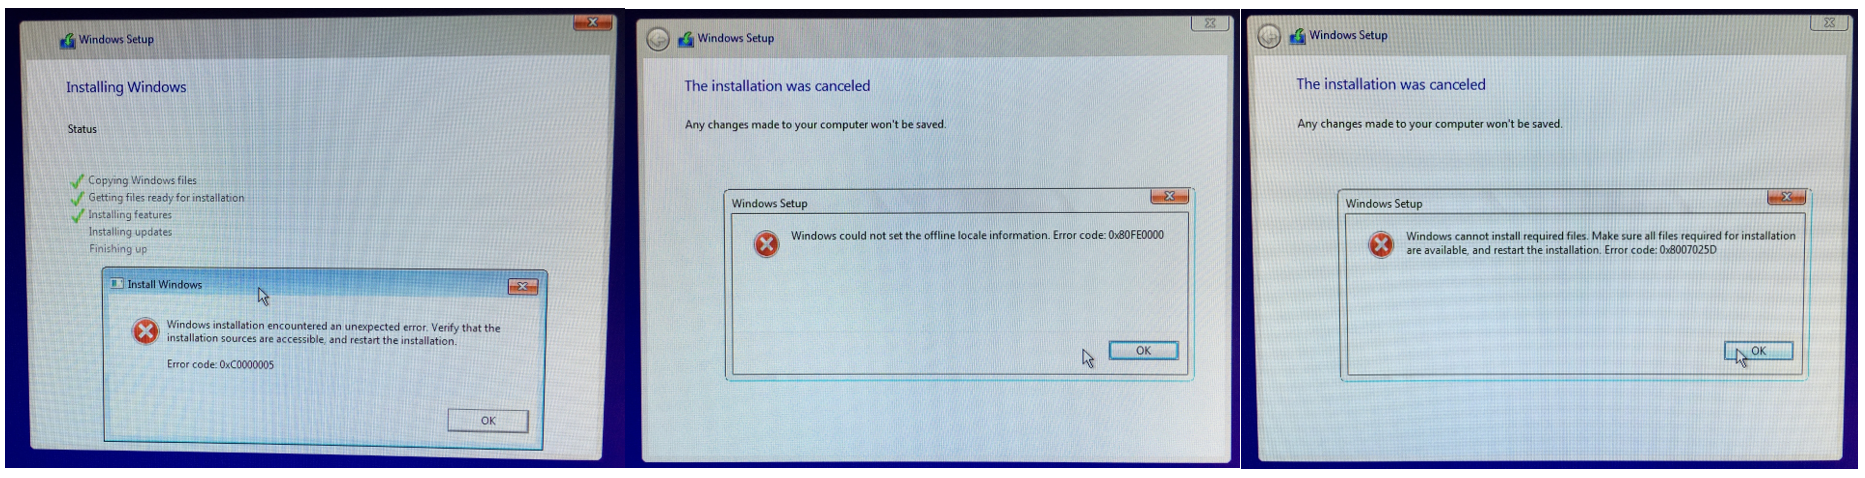 how to clean install windows 10 with another computer